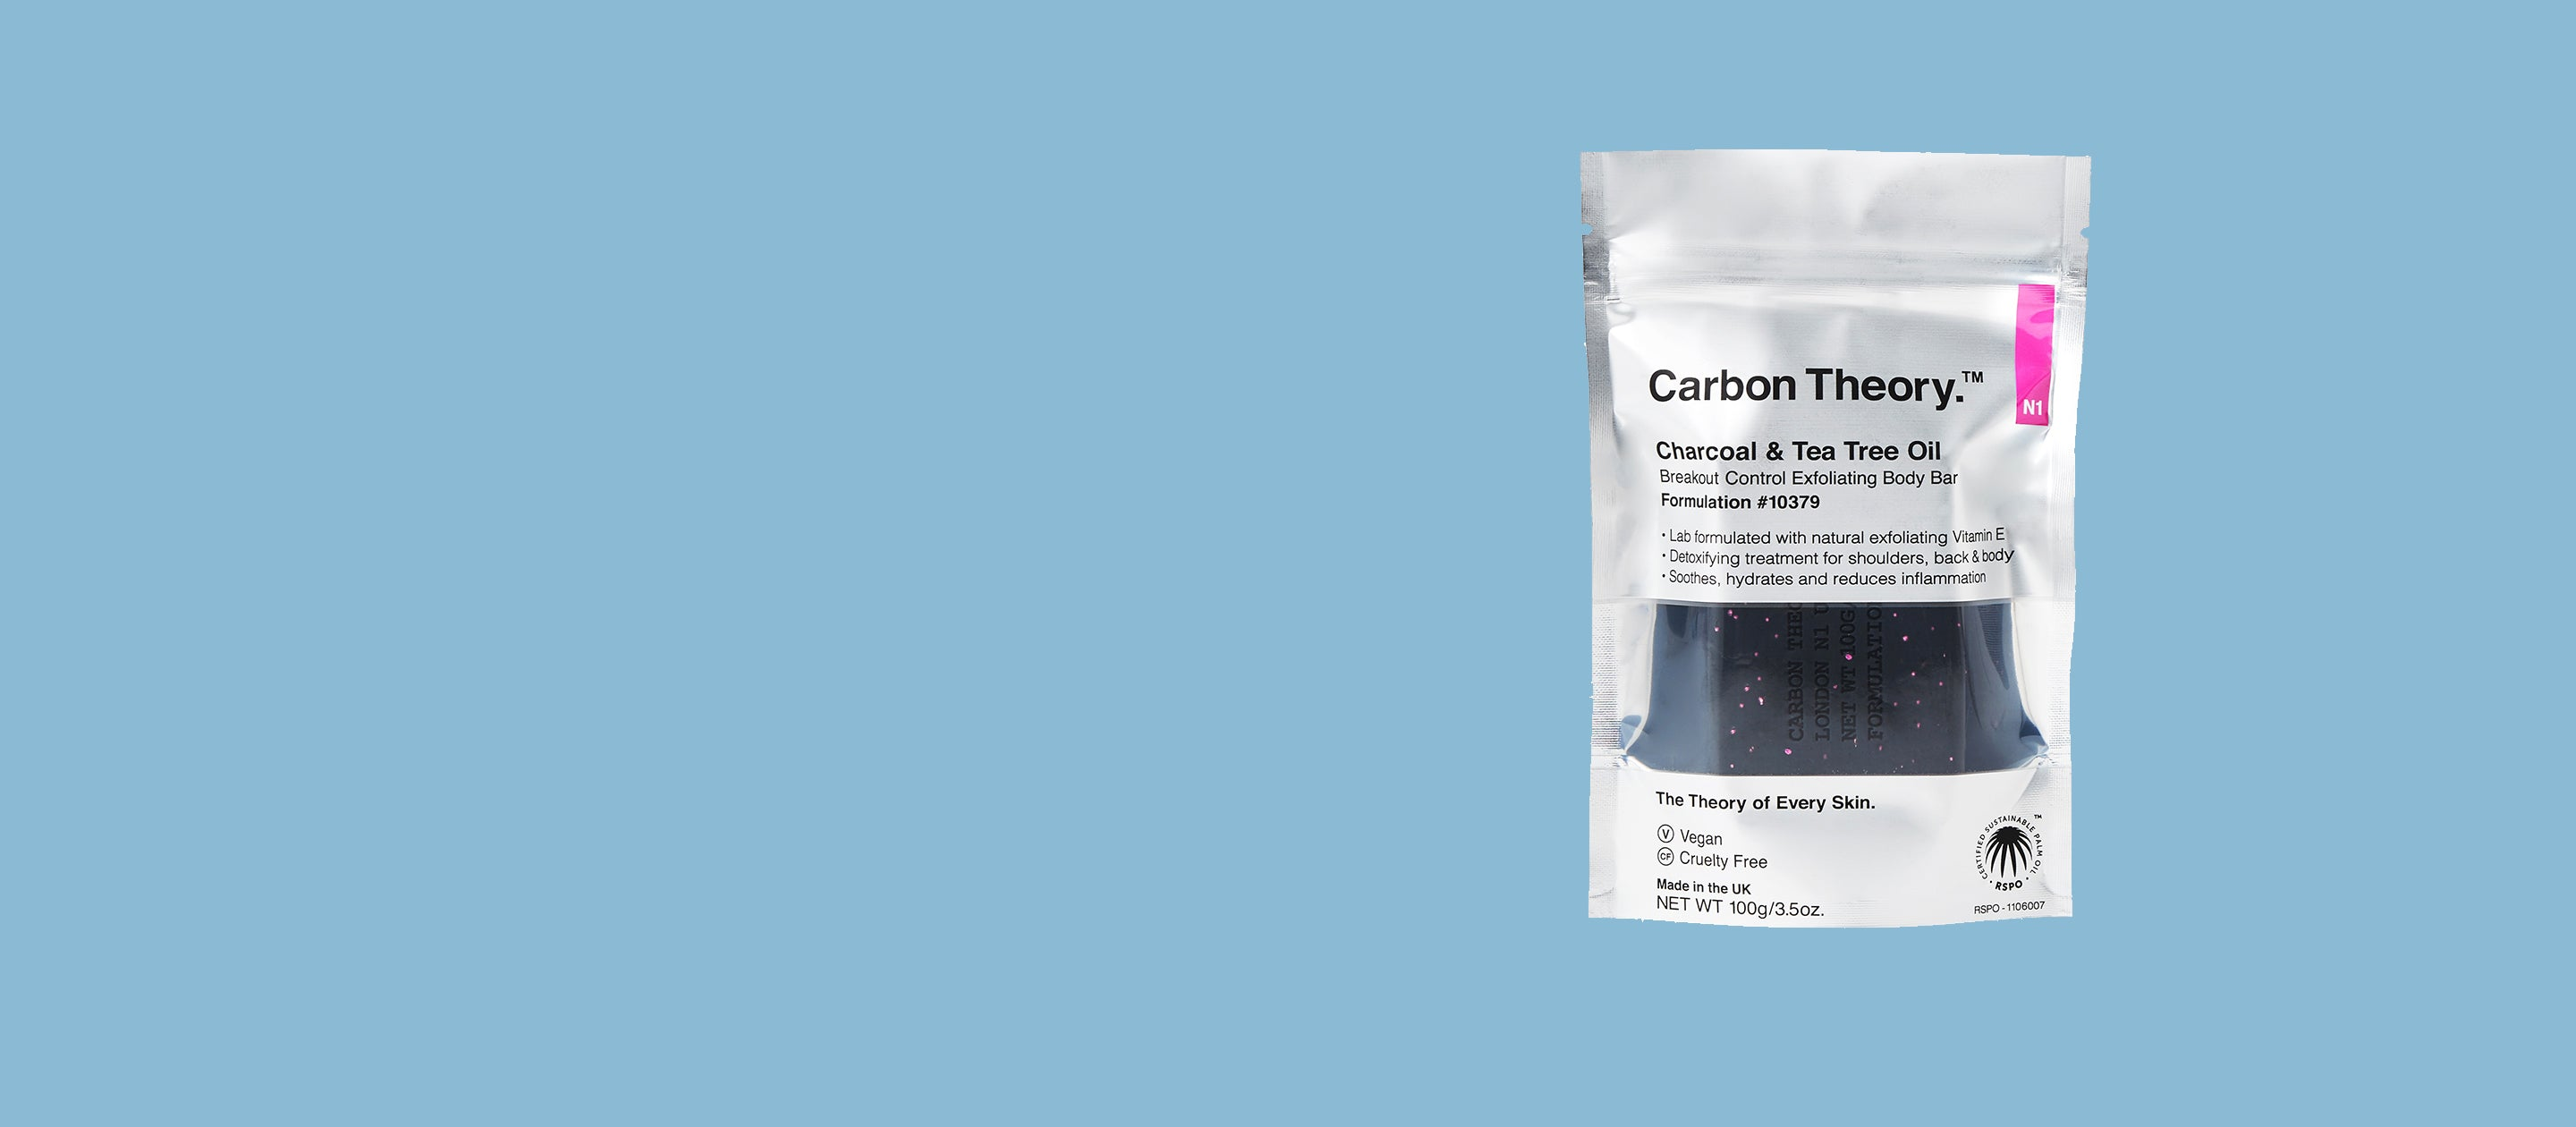 Carbon Theory Exfoliating Body Bar